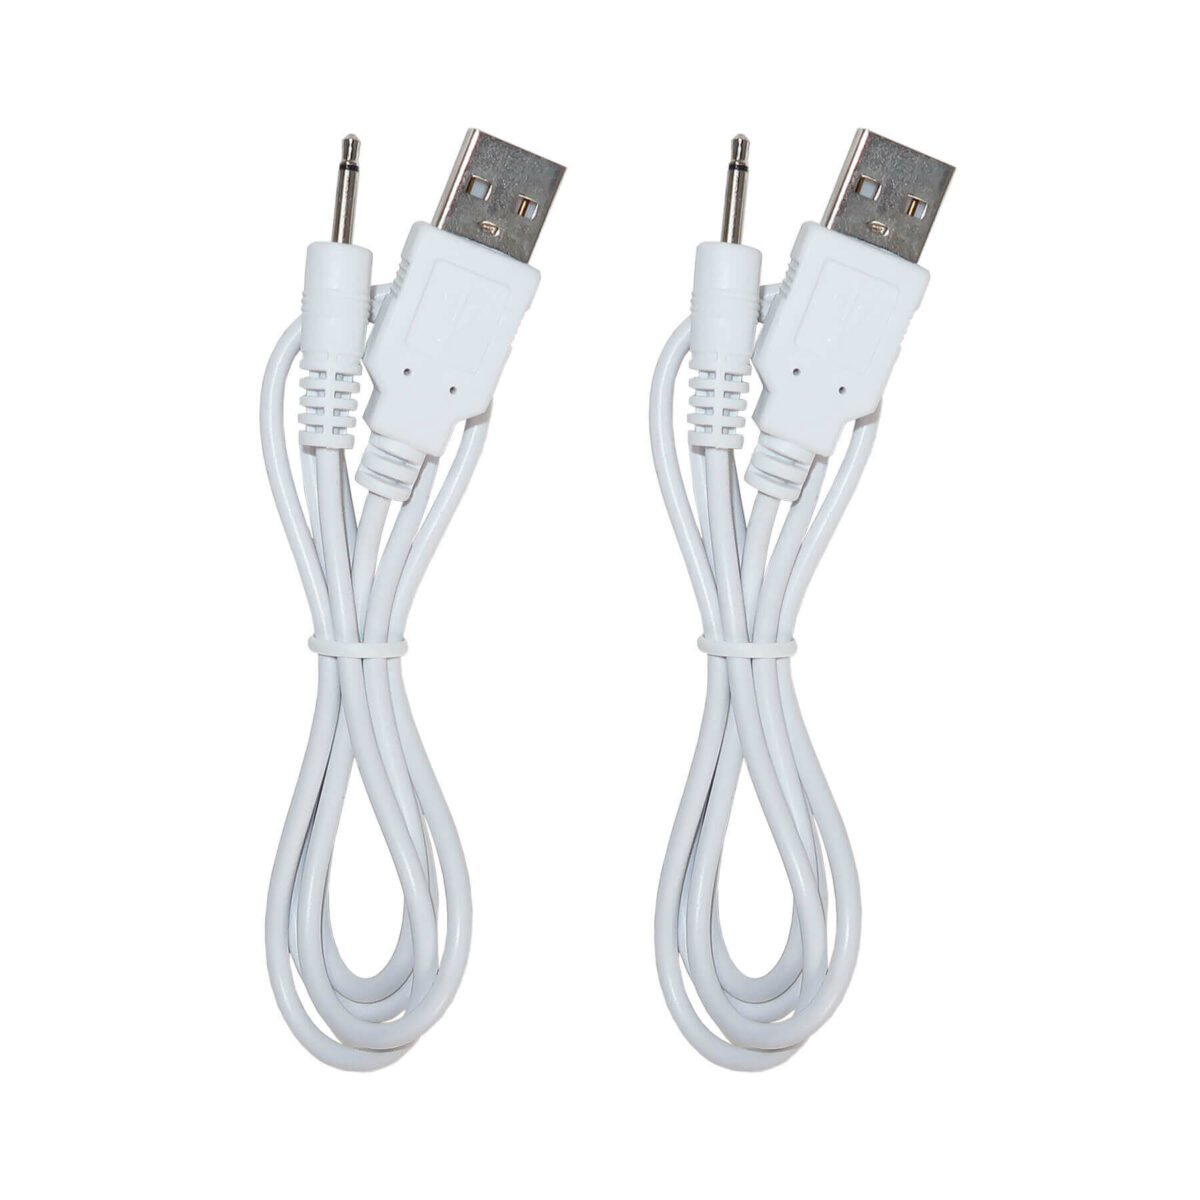 plusOne® magnetic charging cable replacement (2 pack) 6719 out of pack